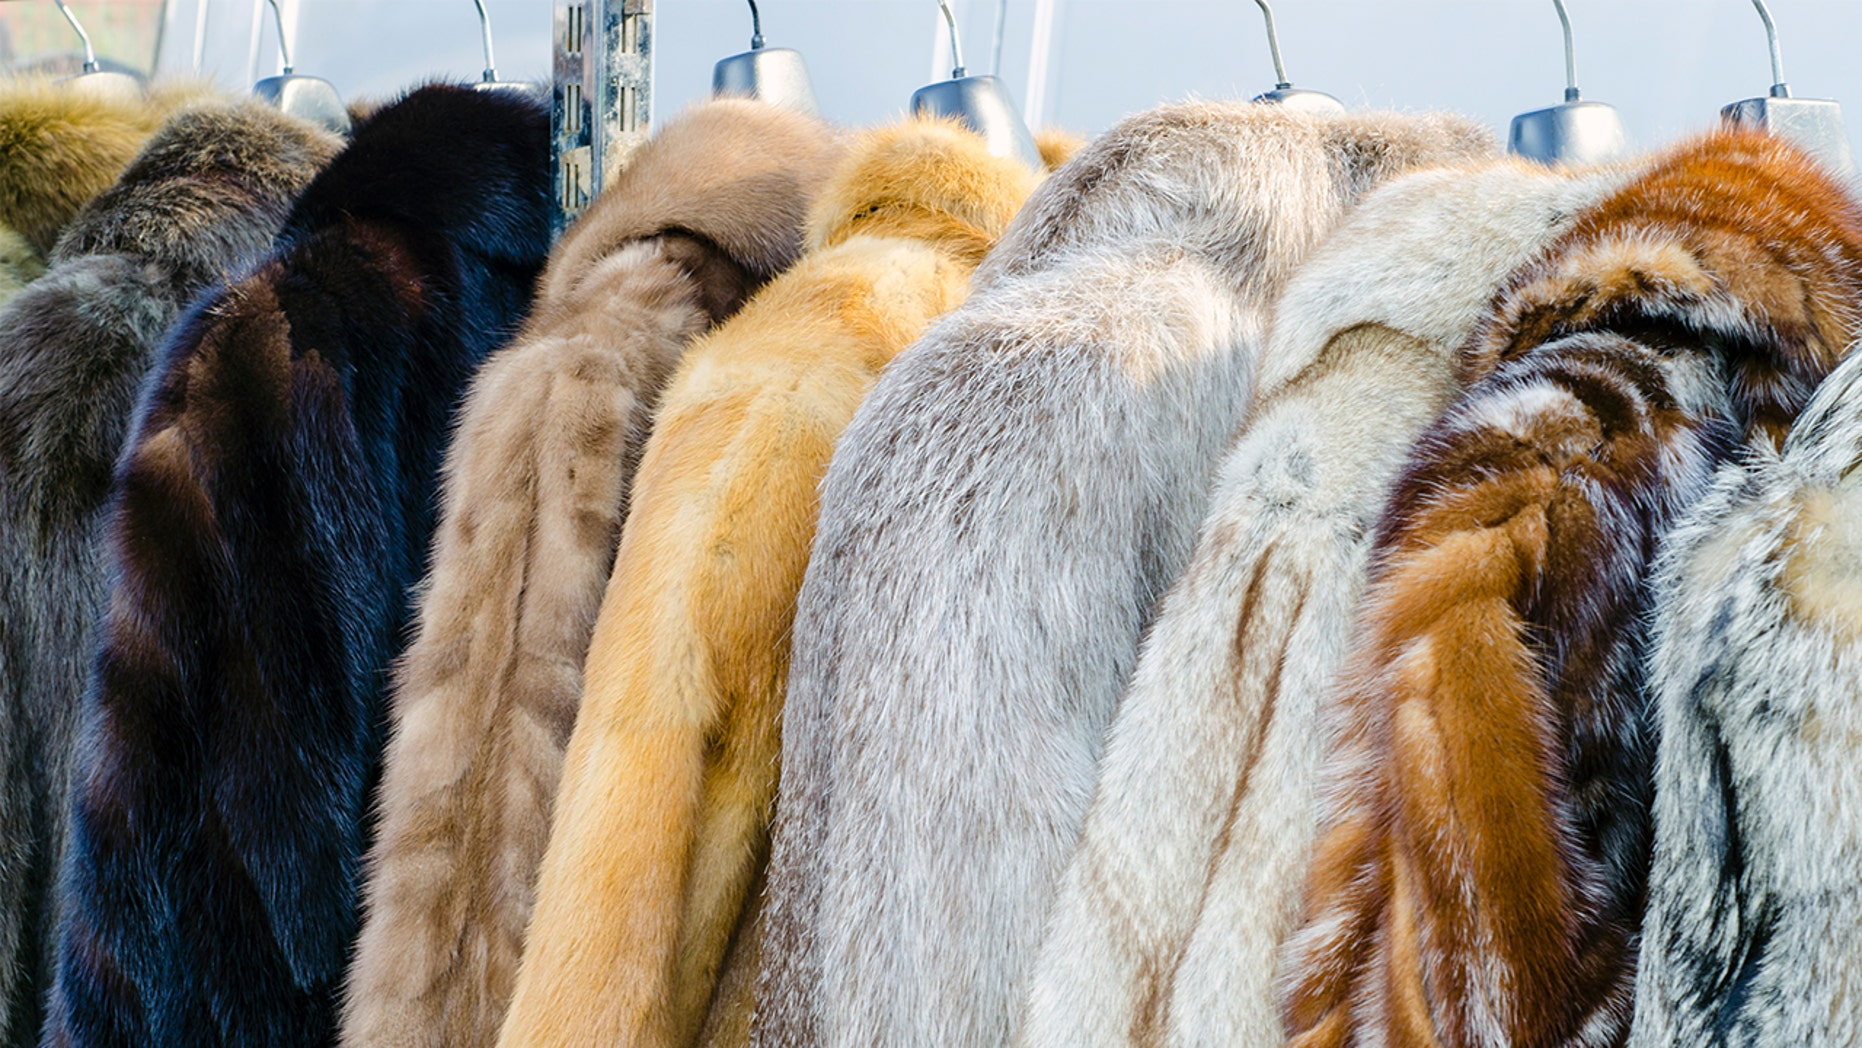 Two opposite retailers have been slammed by a Humane Society for flitting genuine fur as mistake on several items.